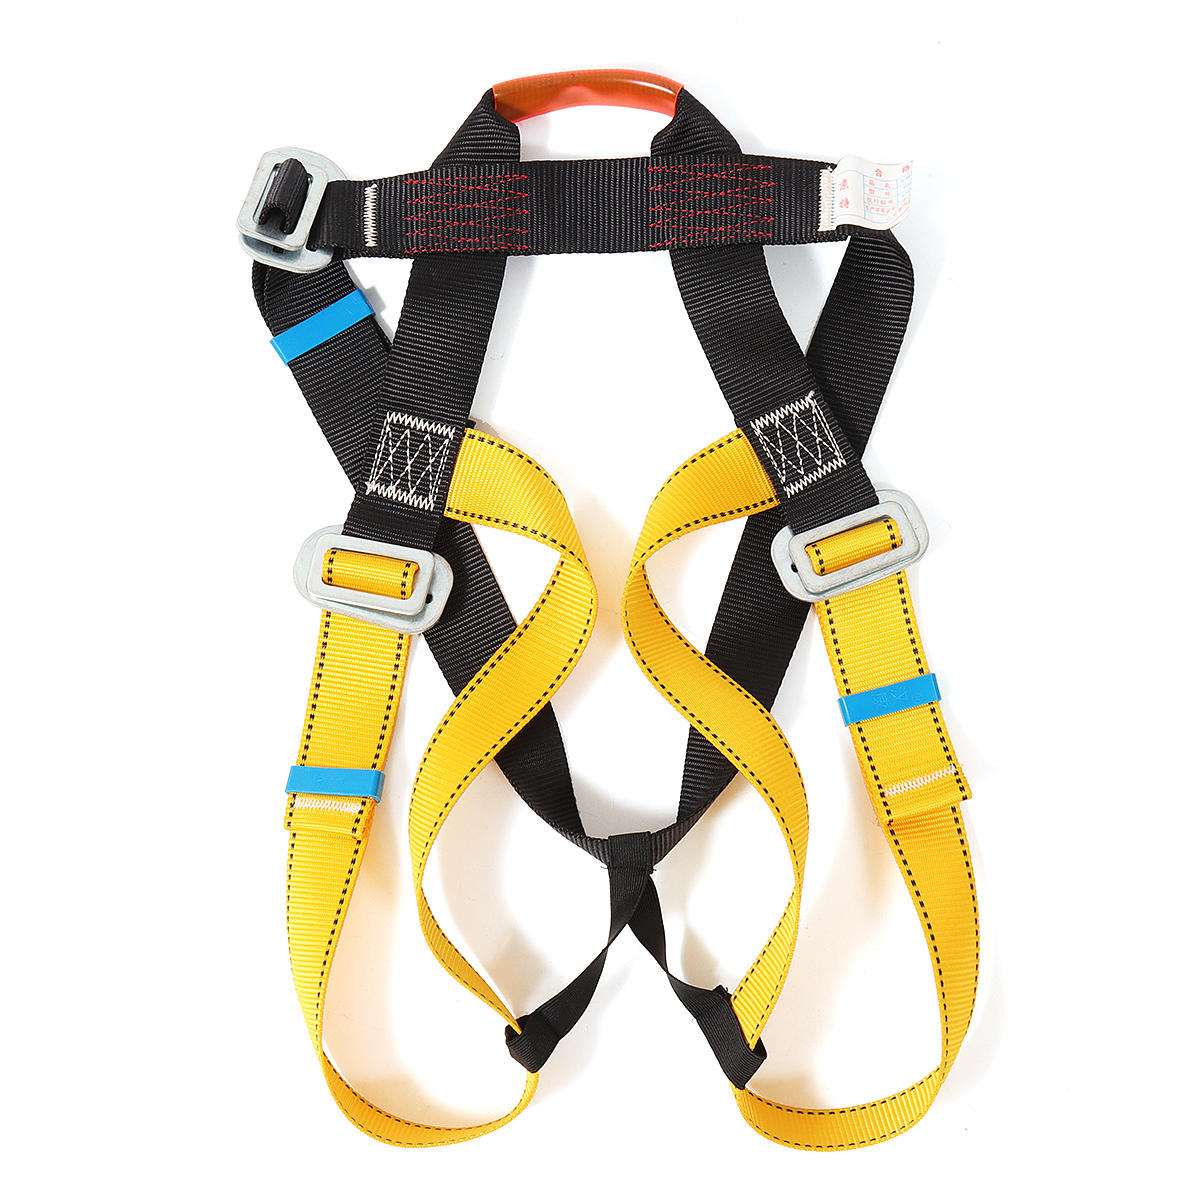 Safety Belt Climbing Belt Camping Safety Rock Protection Waist Belt High Altitude Safety Belt Harness Equipment